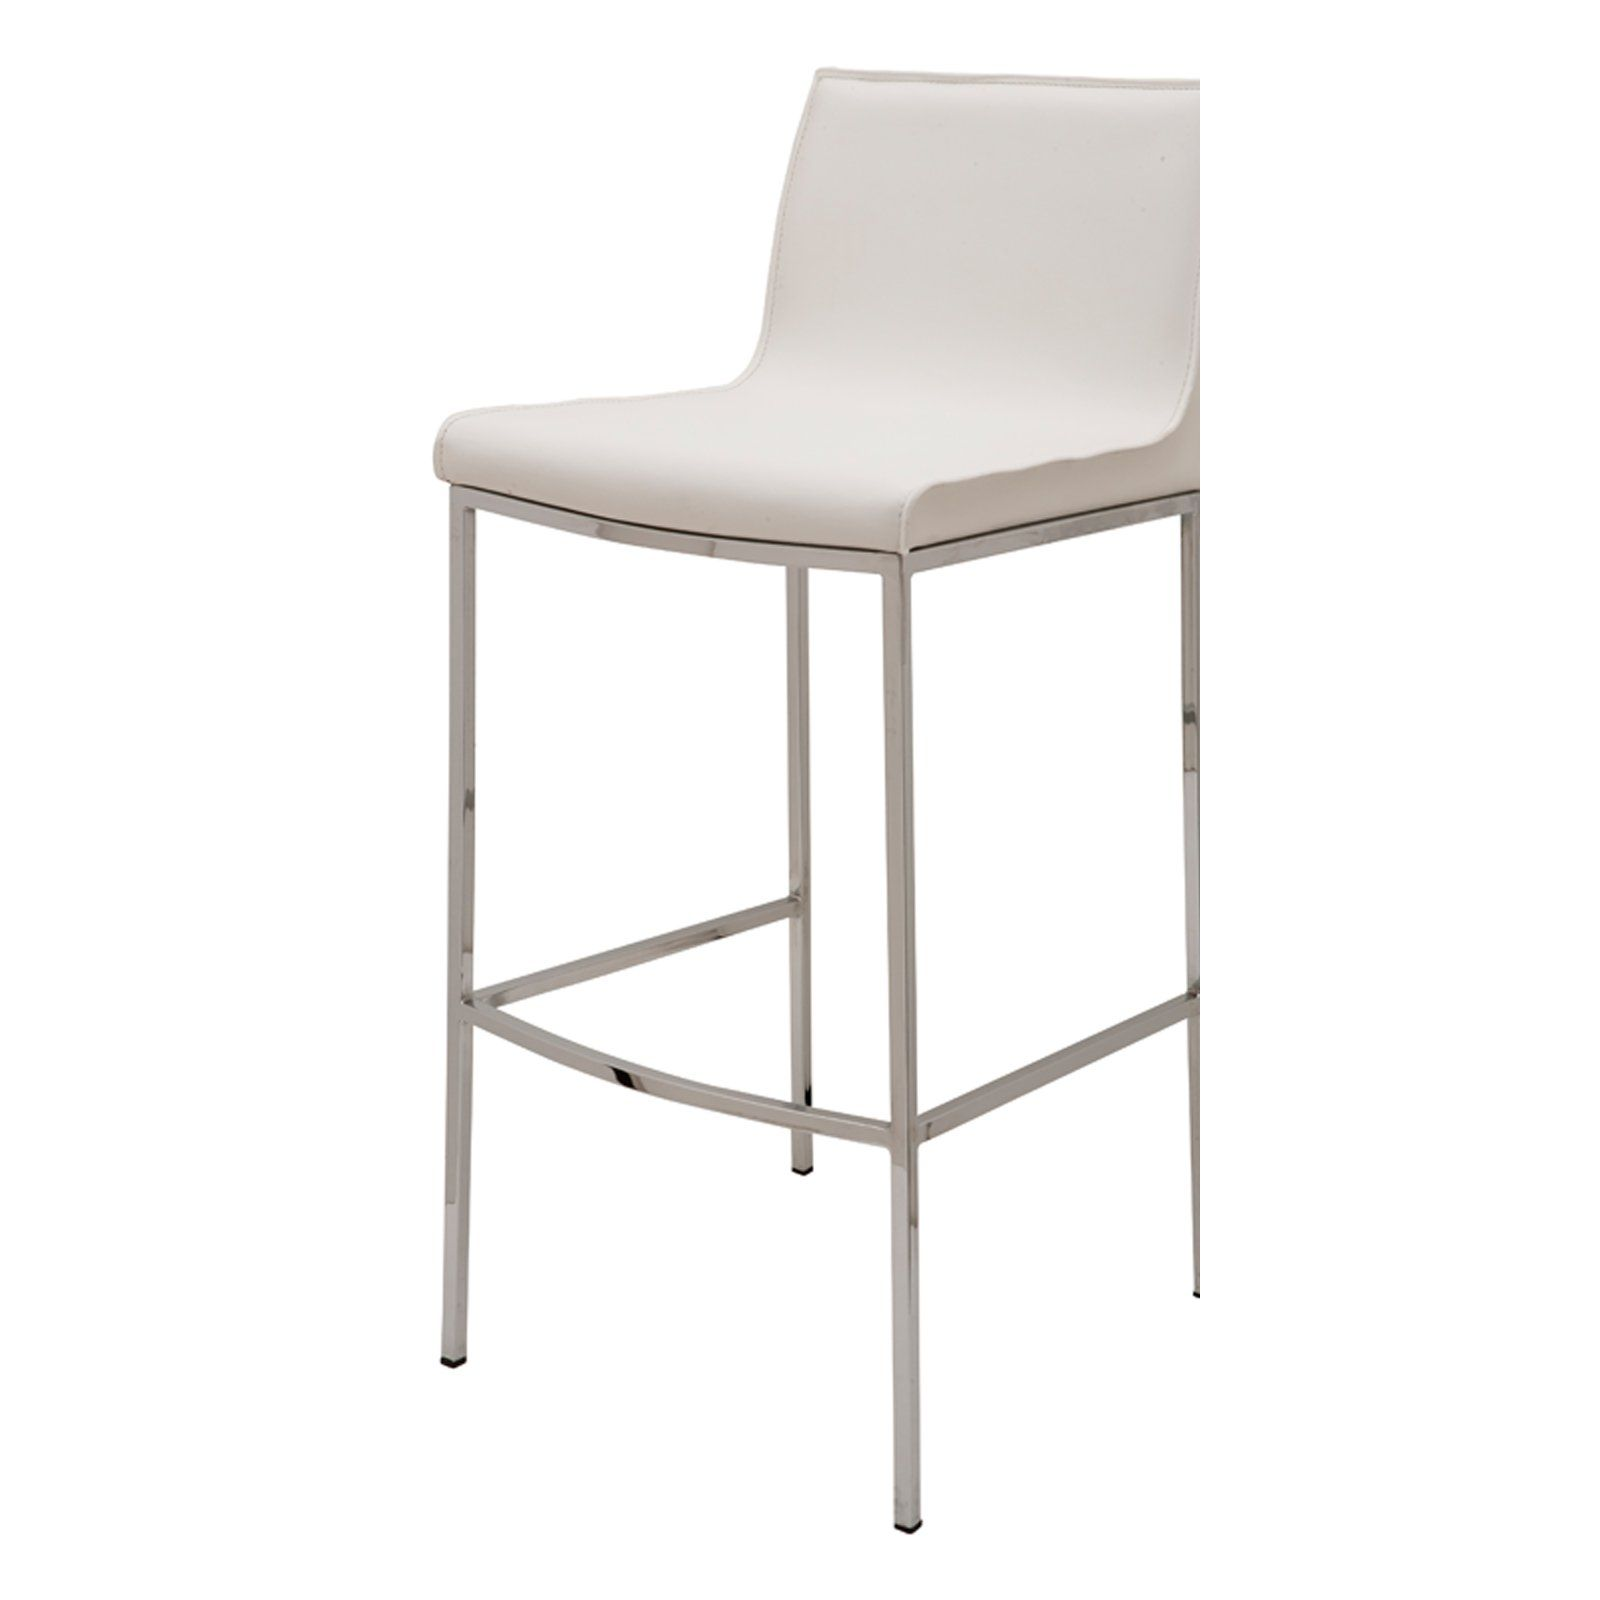 Nuevo 25 75 In Colter Leather Counter Stool White White Leather